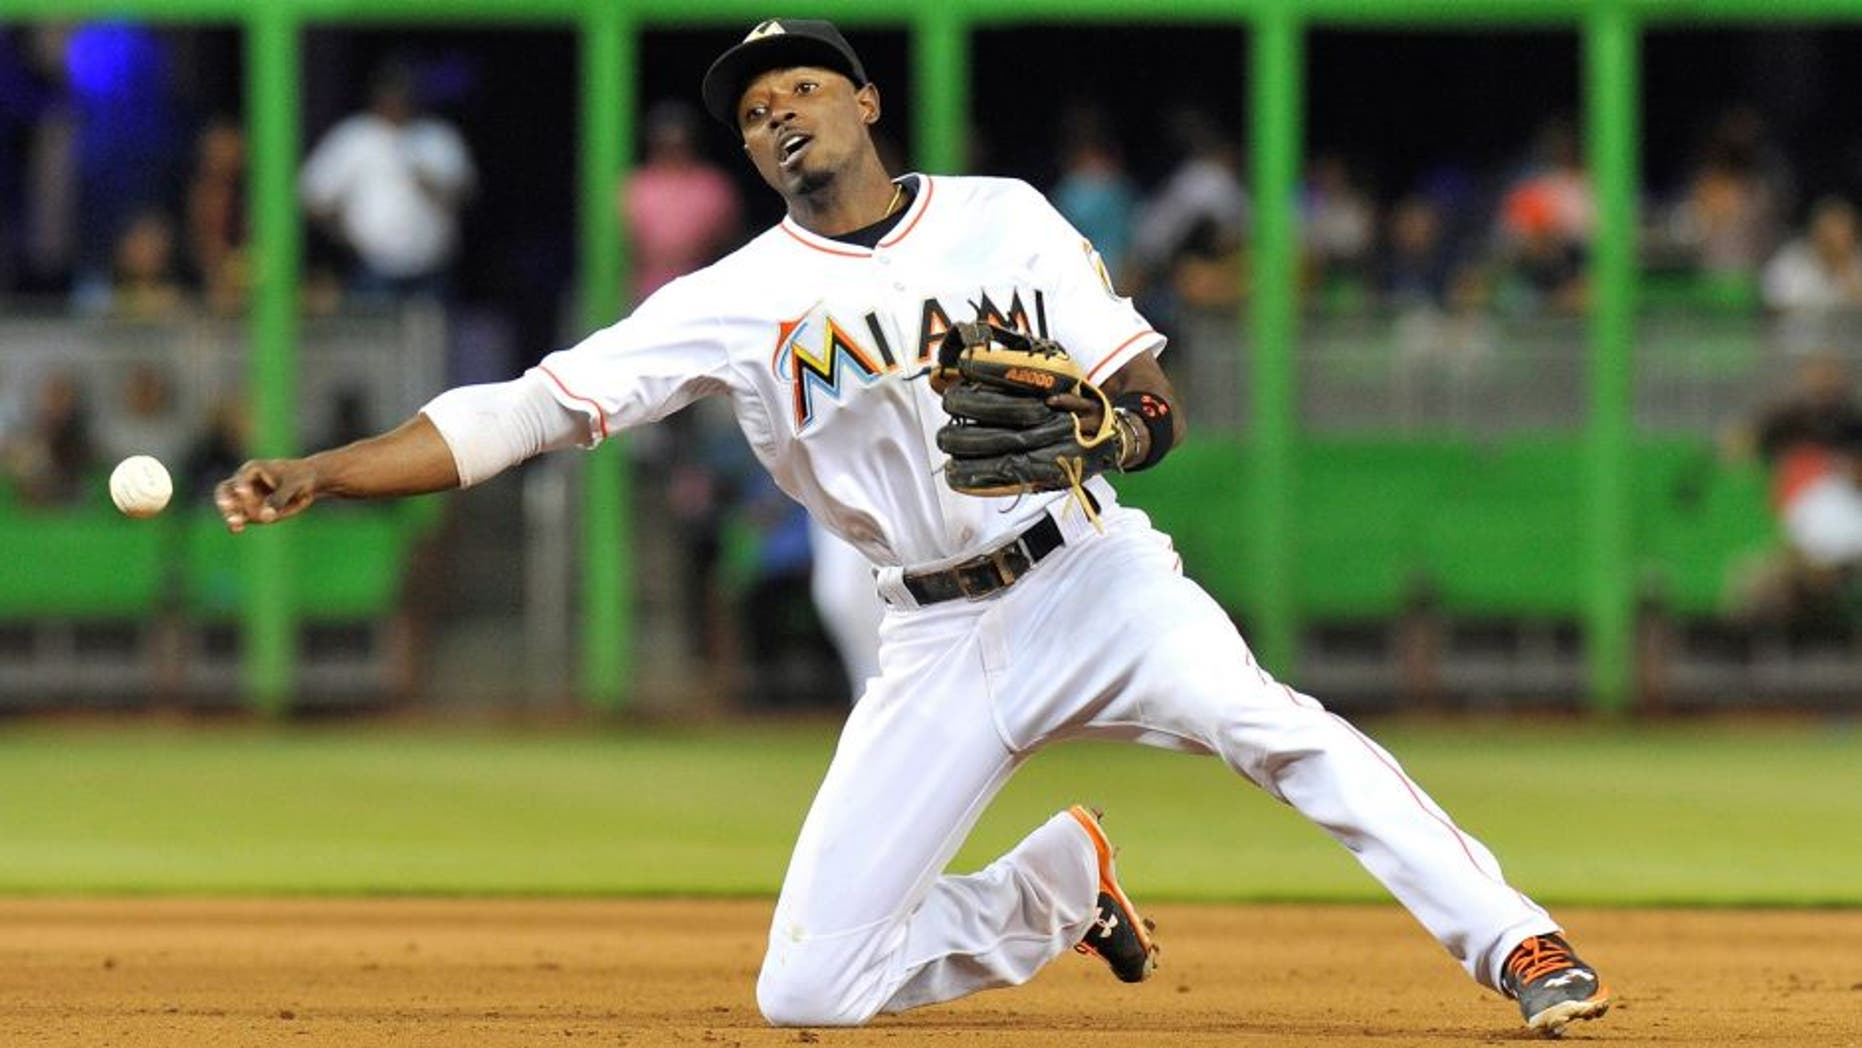 Aug 24, 2015; Miami, FL, USA; Miami Marlins second baseman Dee Gordon (9) throws over to first base during the eighth inning against the Pittsburgh Pirates at Marlins Park. Mandatory Credit: Steve Mitchell-USA TODAY Sports